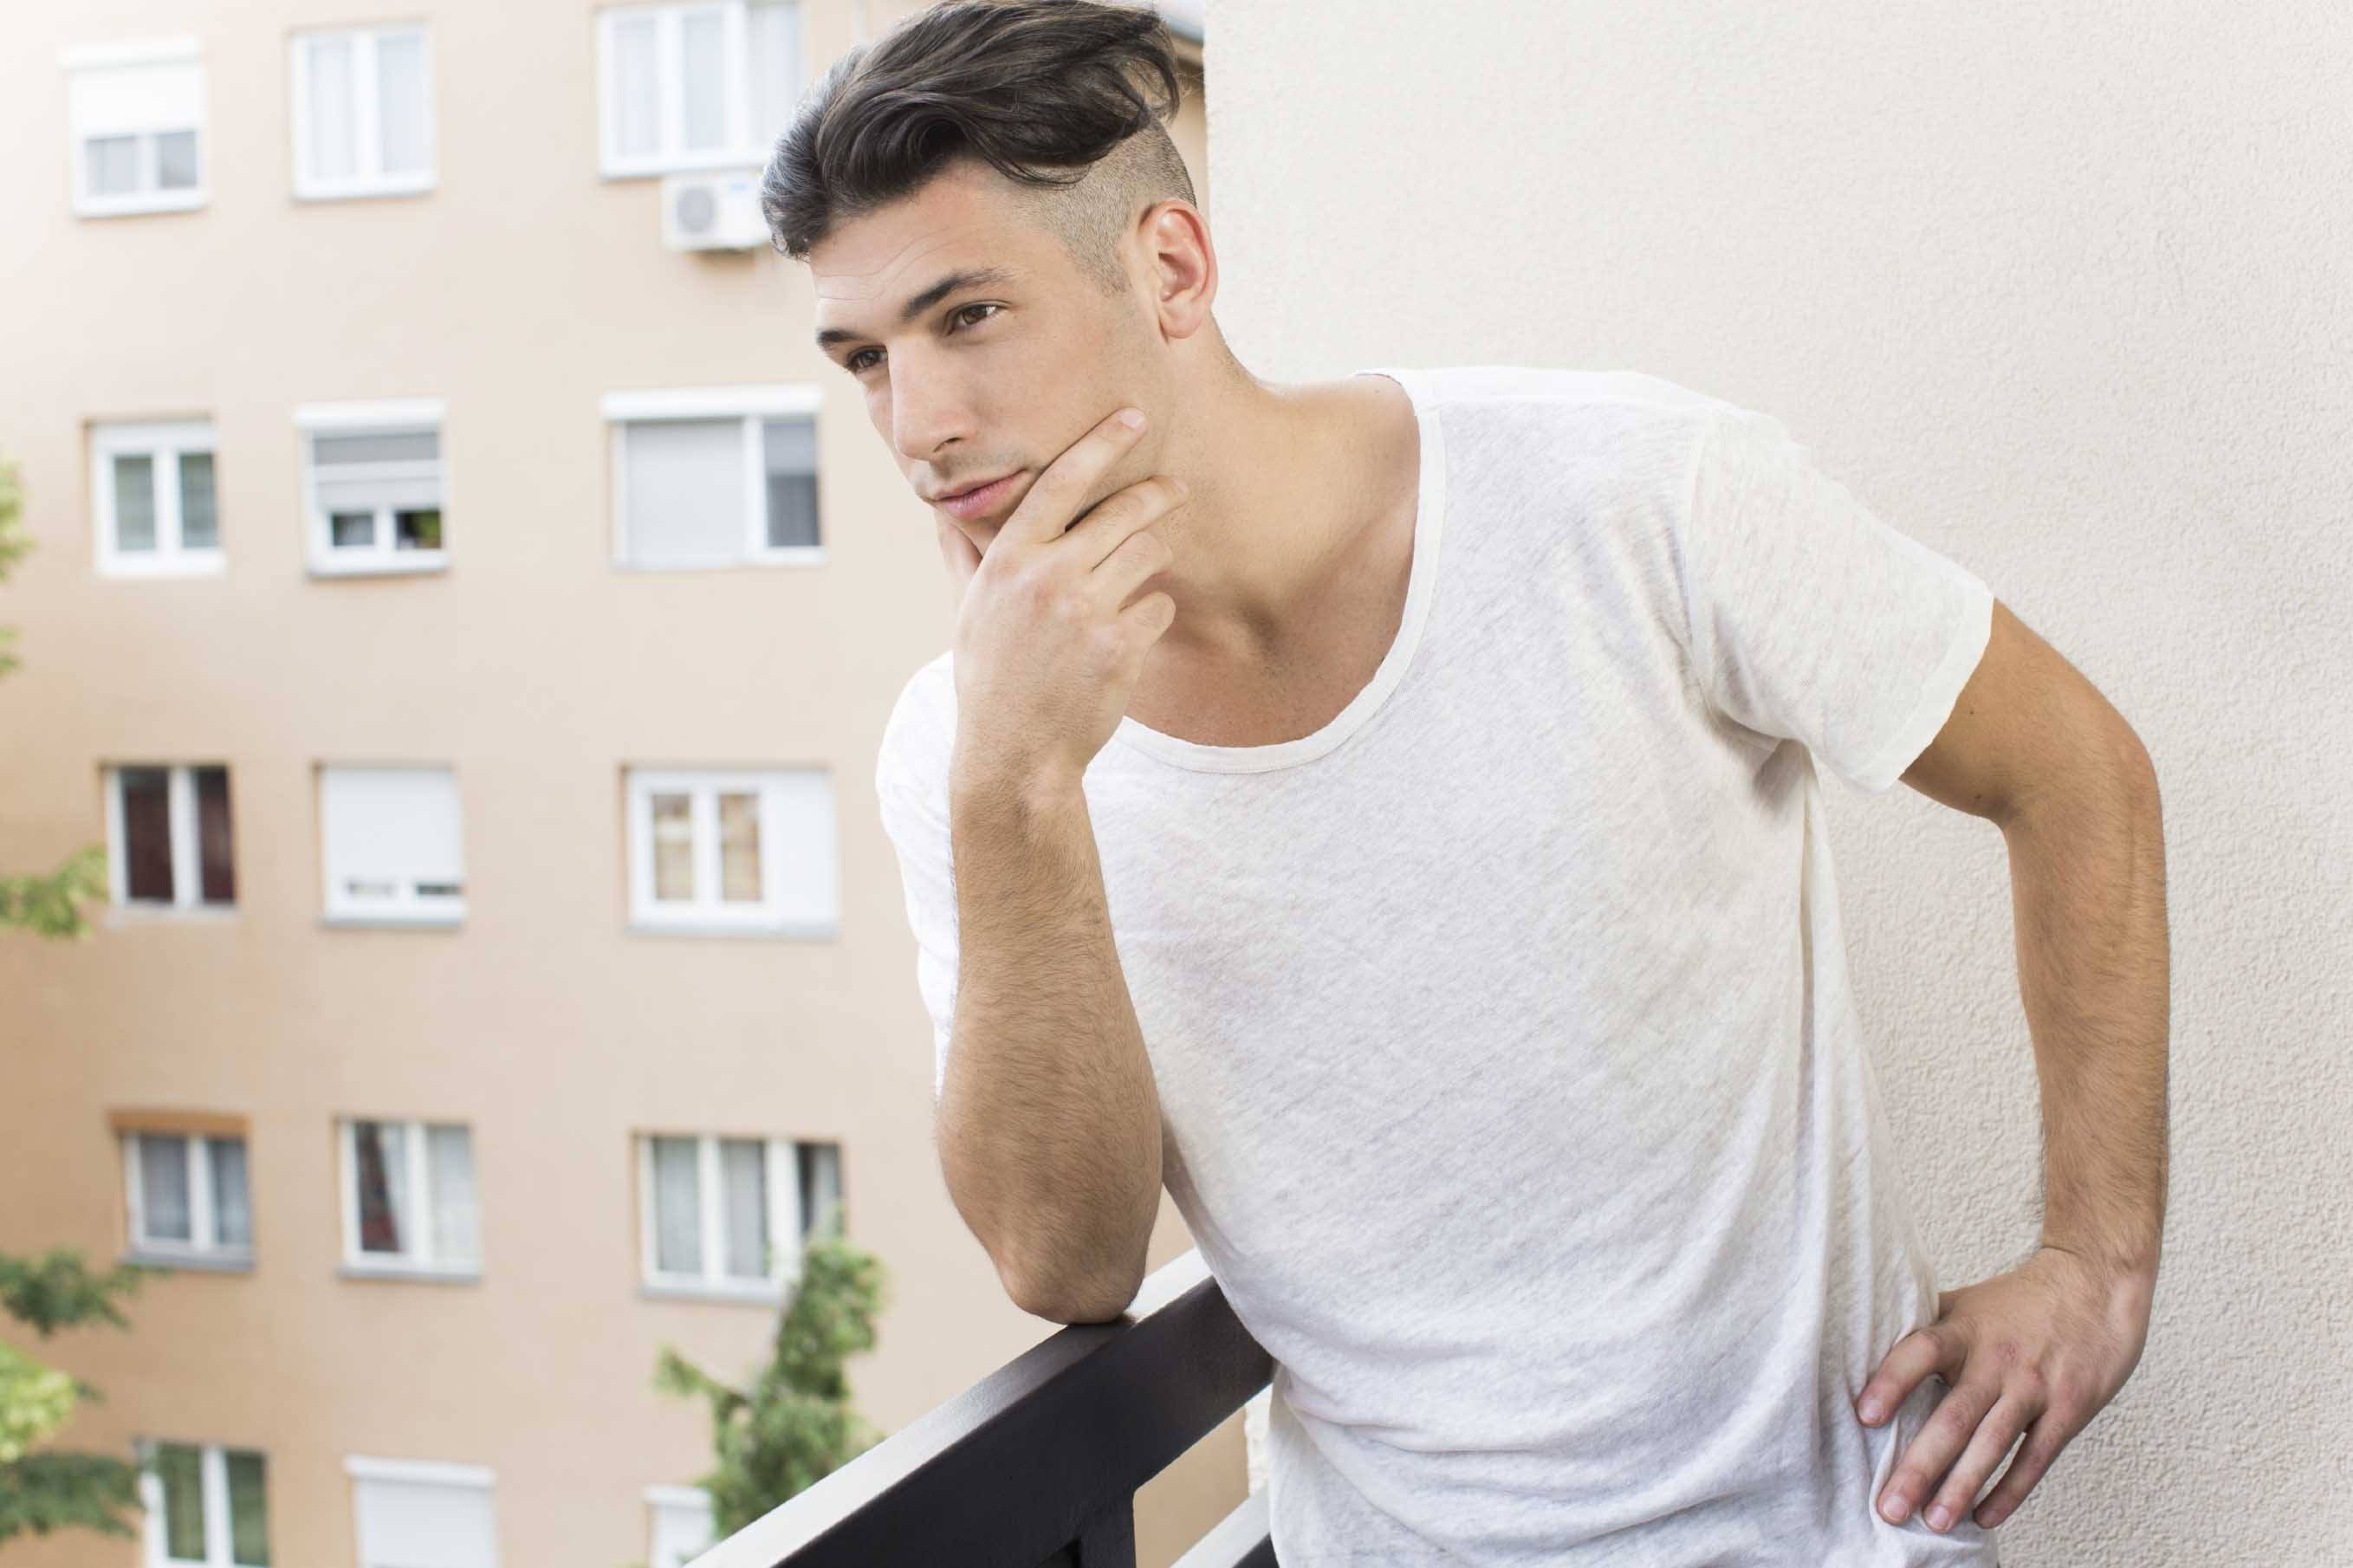 Men's haircuts for round faces: A man with a dark pompadour and undercut hairstyle, wearing white shirt and posing outside